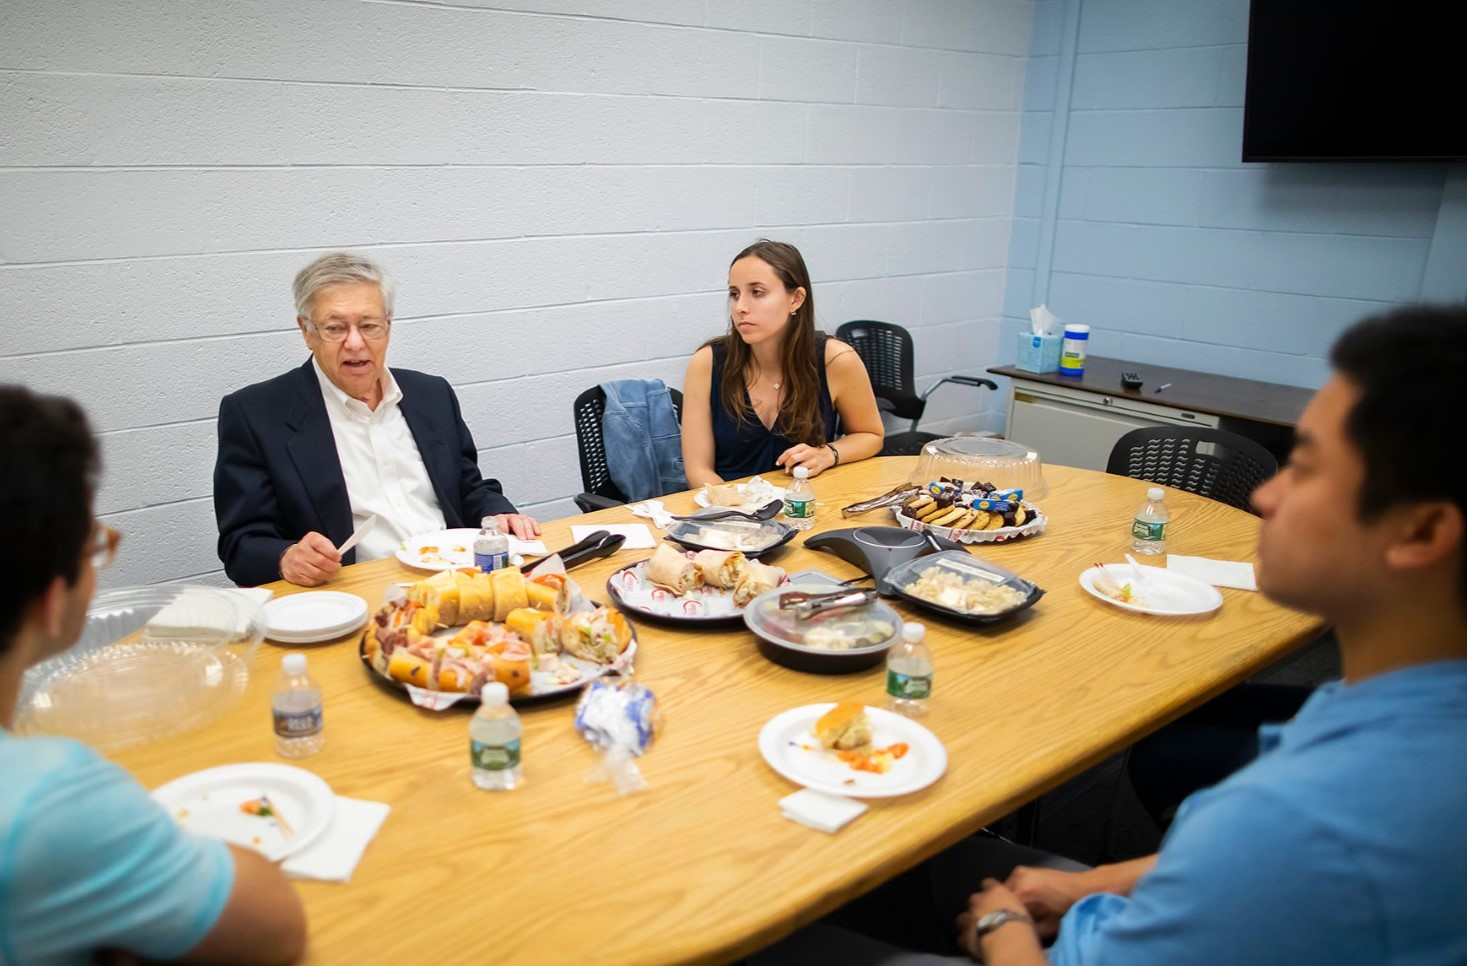 Creative Approach to Class Project Earns Penn Senior from Phoenixville Lunch with Nobel Laureate